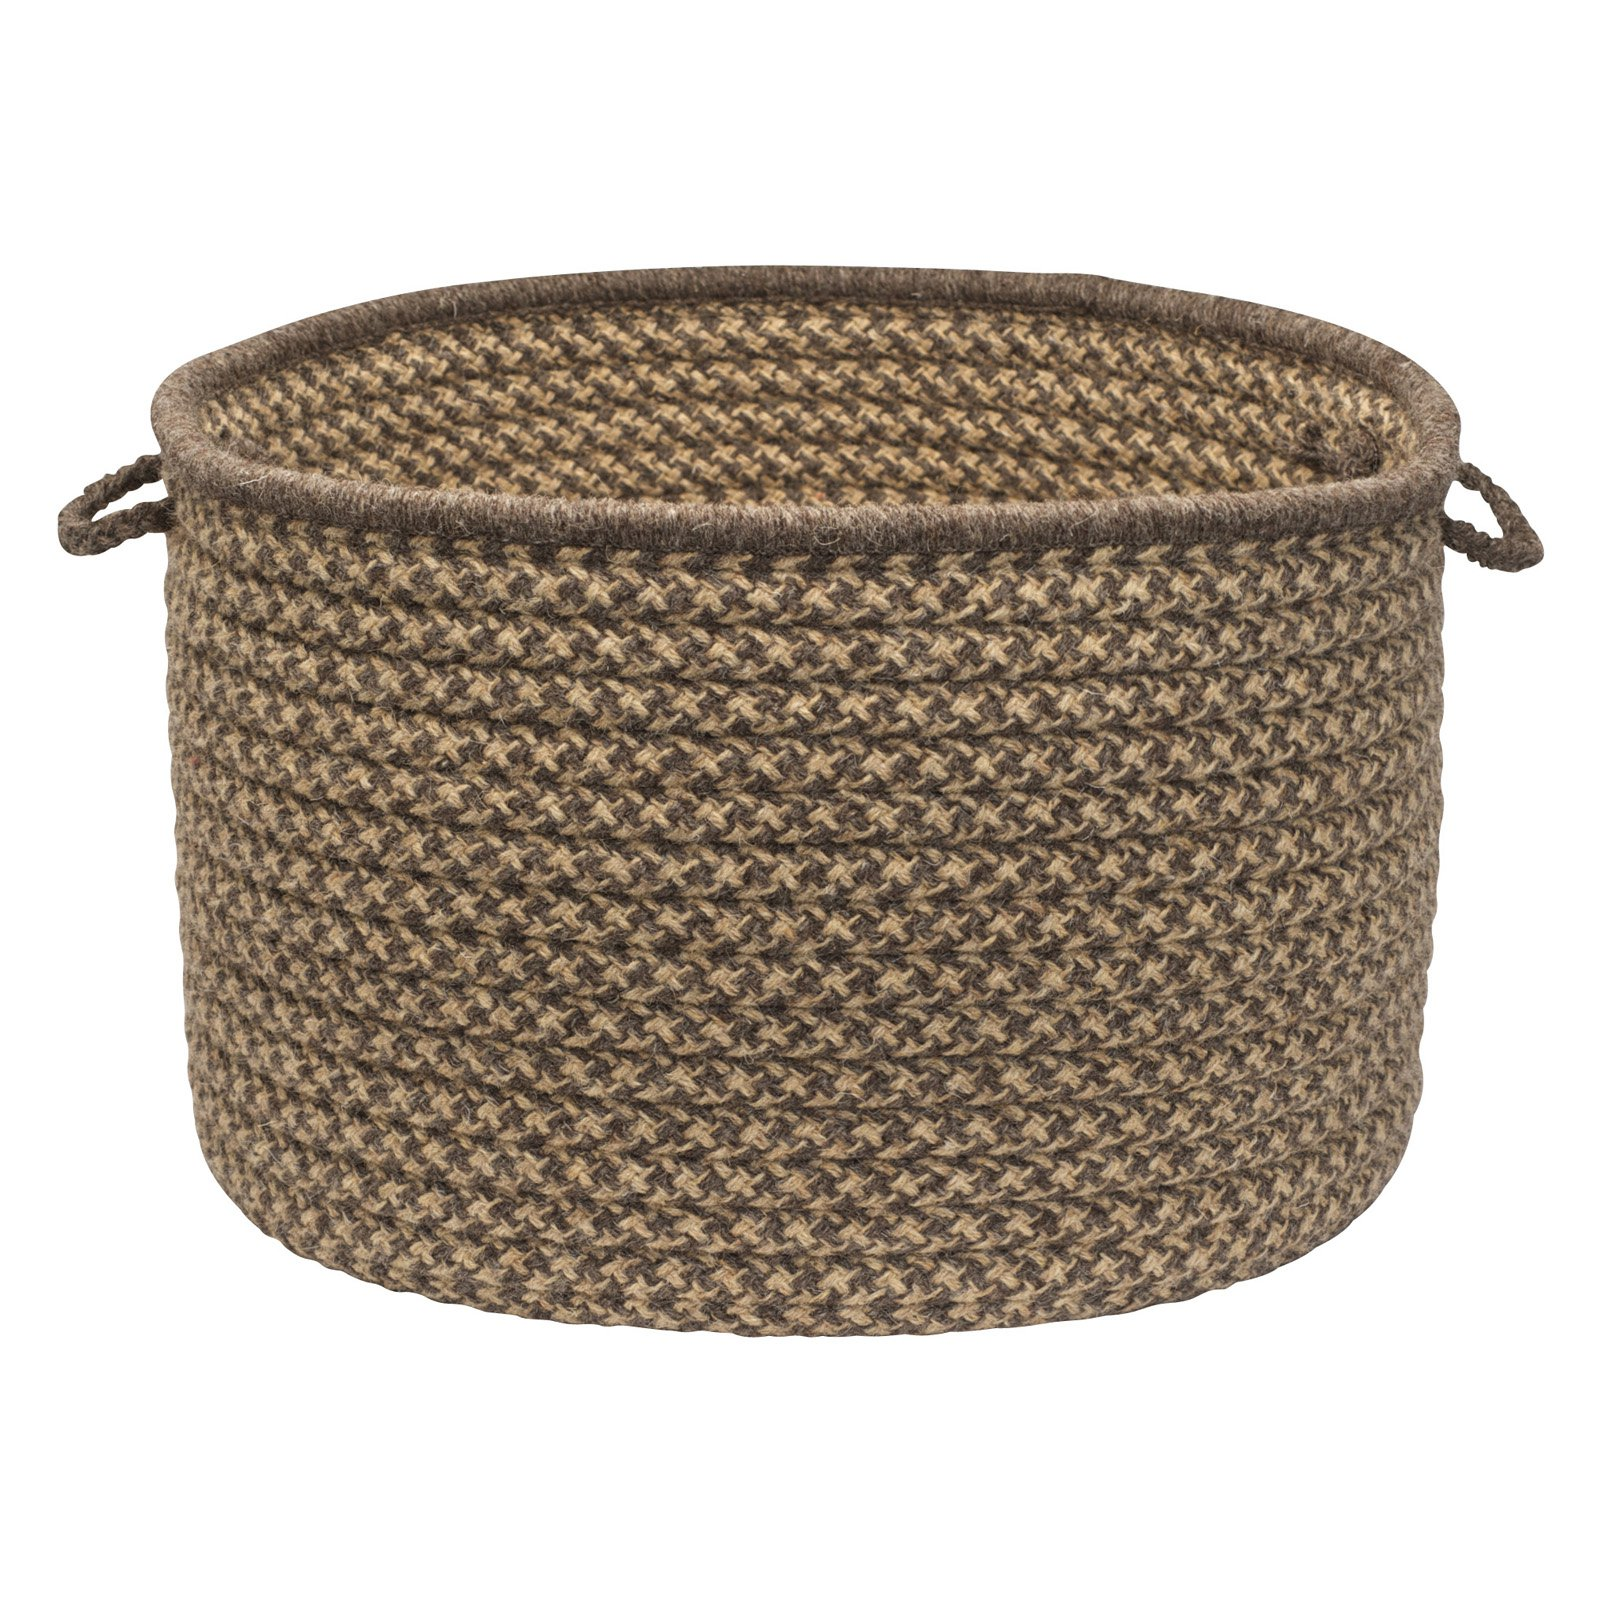 Colonial Mills HD34A018X018 Natural Wool Houndstooth Utility Basket - Caramel